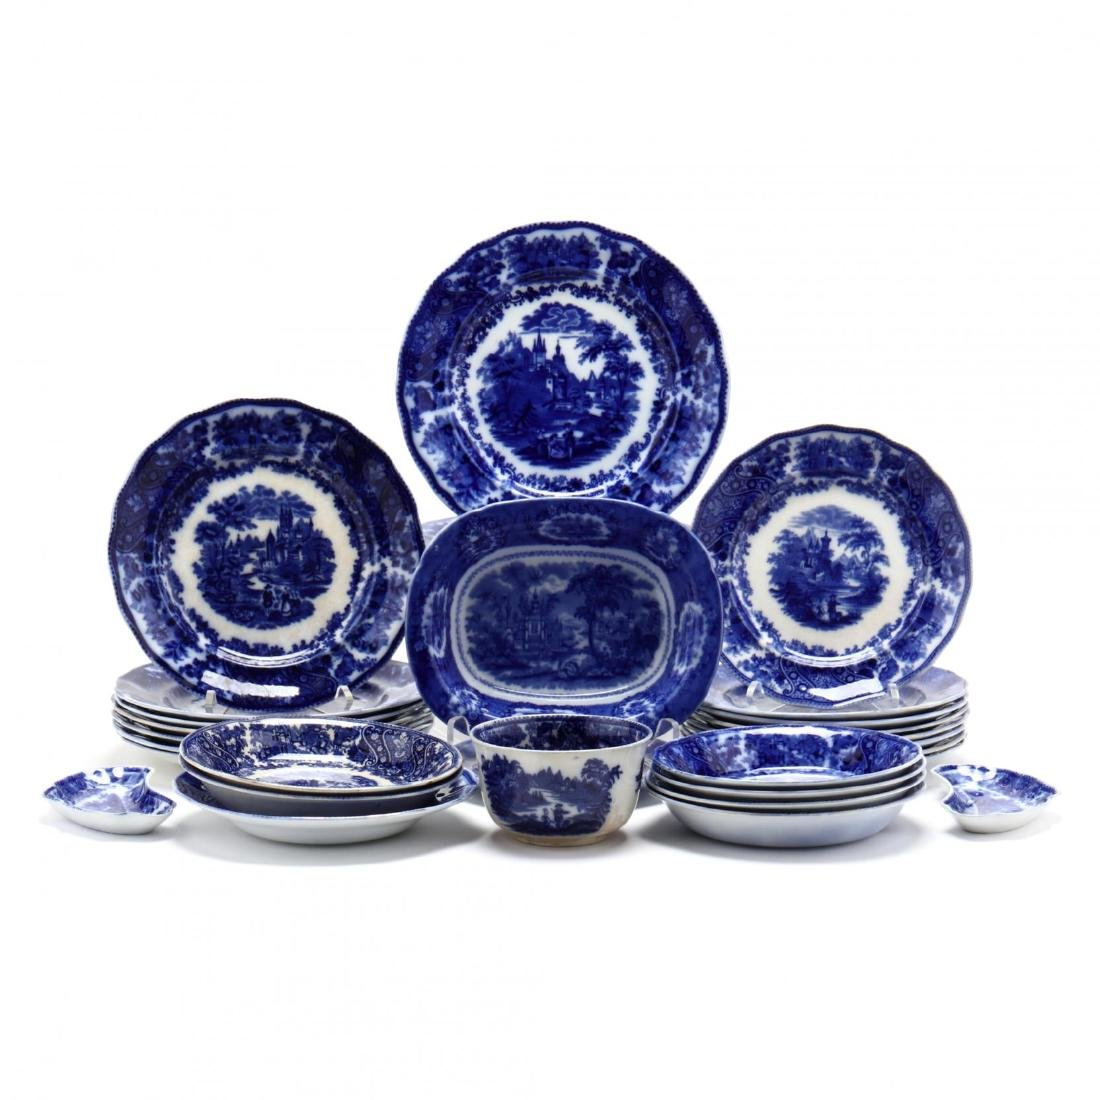 31 Piece Set of Flow Blue Burgess Leigh China in the